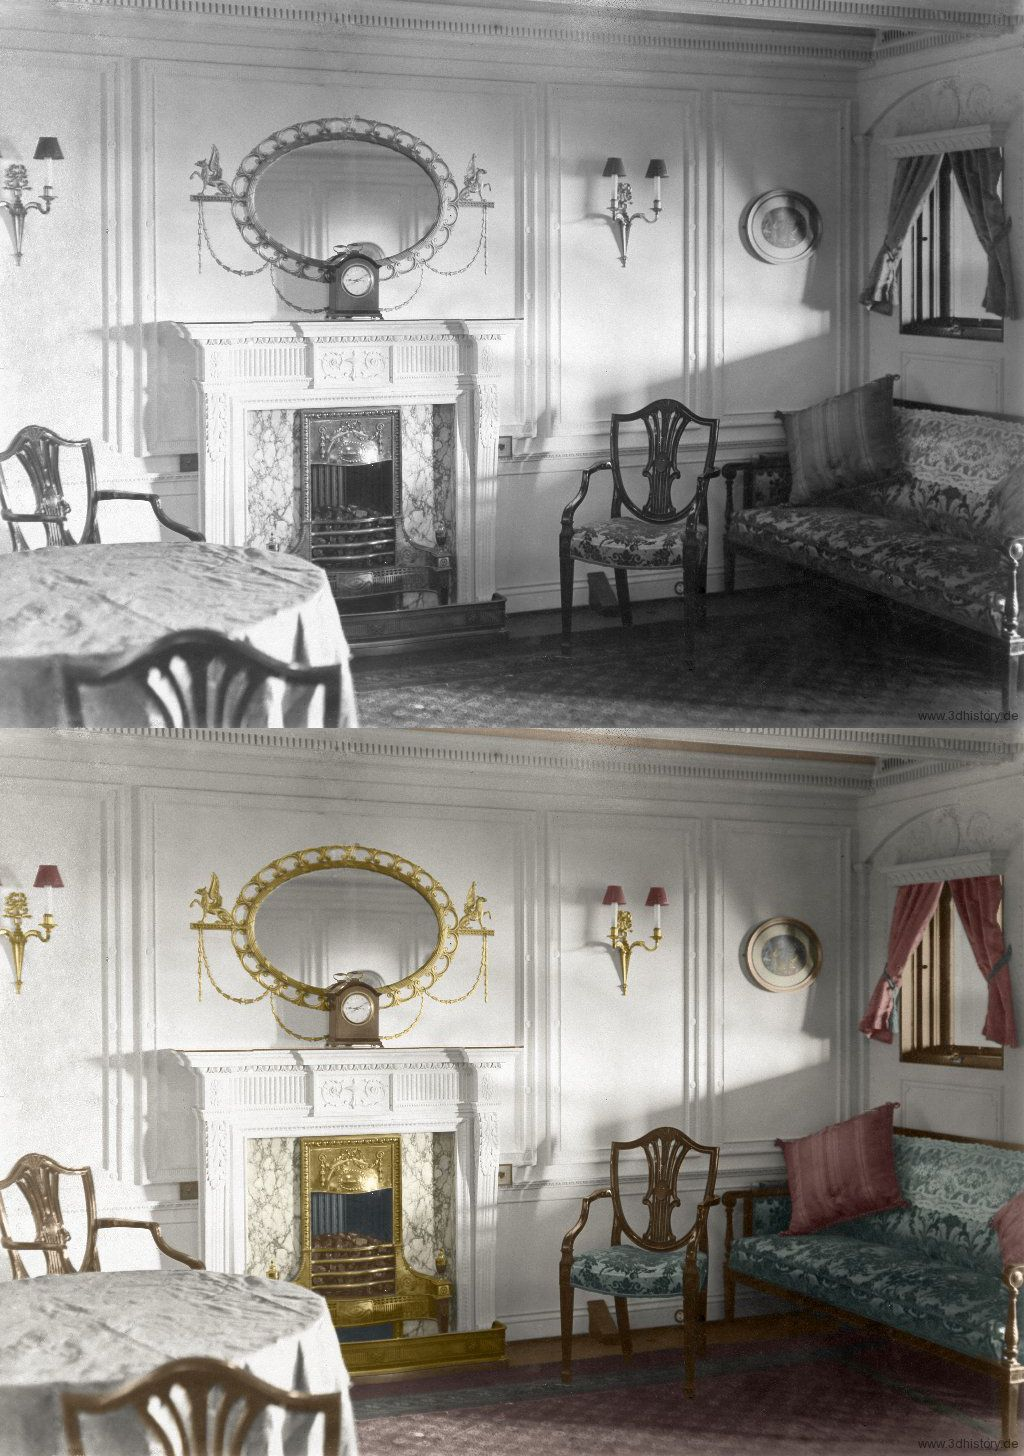 titanic first class parlor suite sitting room house pinterest. Black Bedroom Furniture Sets. Home Design Ideas